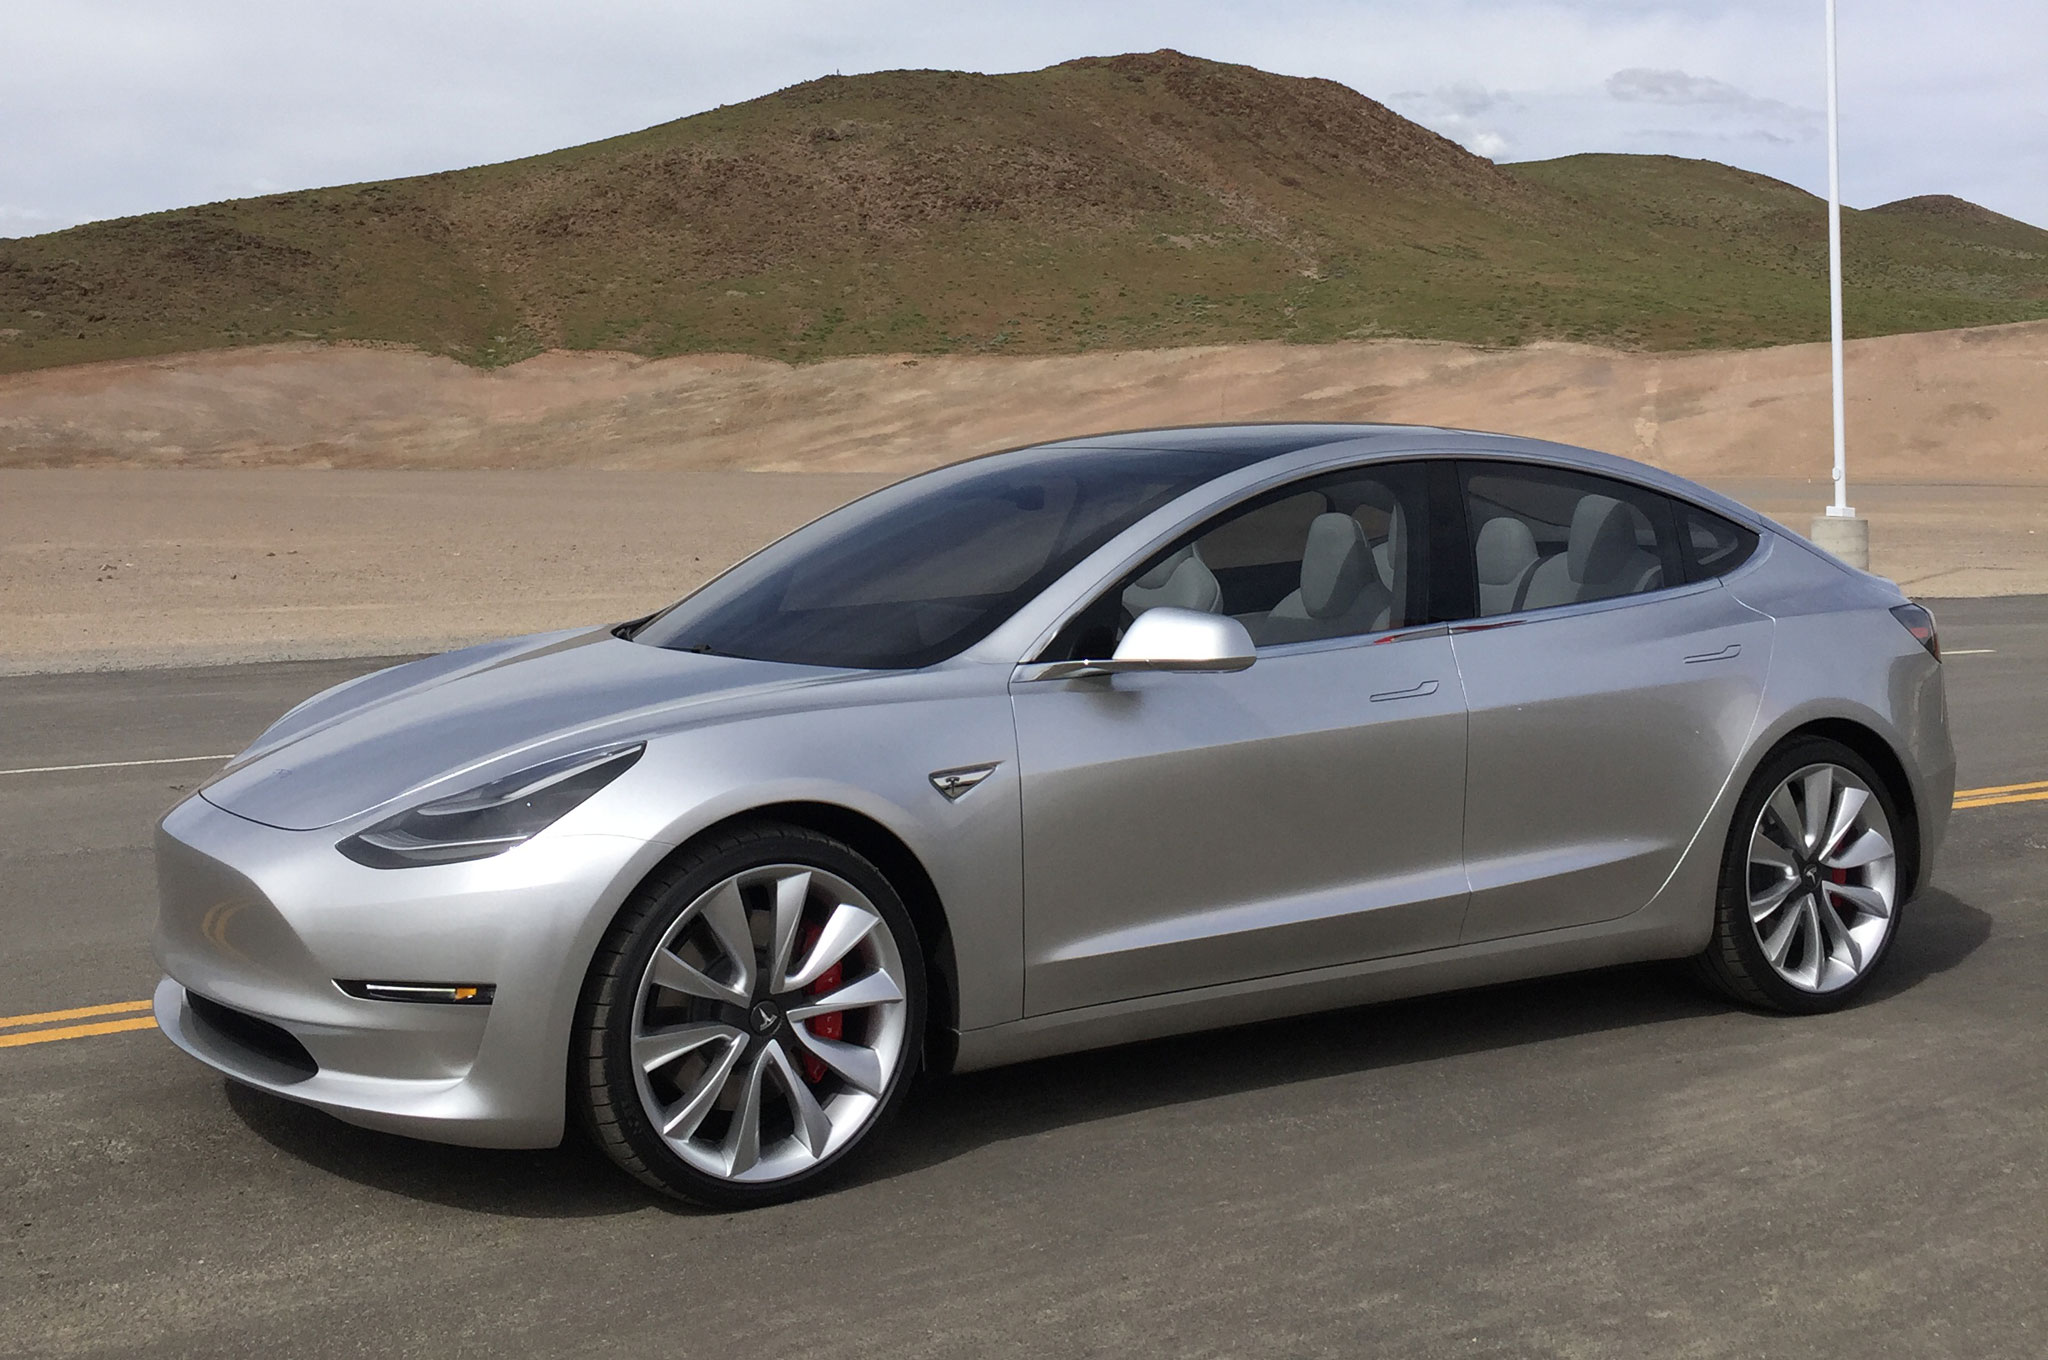 Future of electric cars in pakistan tesla model 3 for Tesla electric car motor specifications